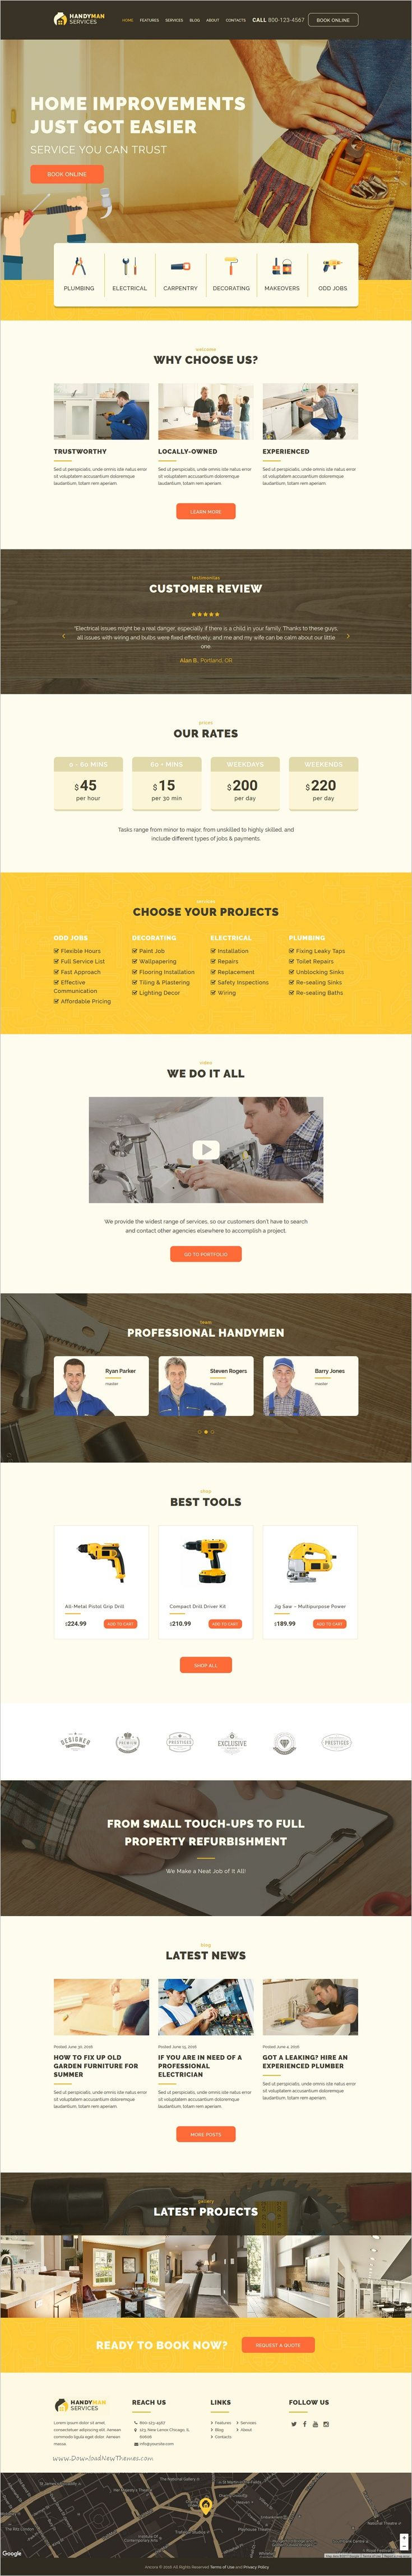 Handyman is modern and functional 3in1 responsive #WordPress #theme for #construction, maintenance and repair business websites download now➩ https://themeforest.net/item/handyman-construction-repair-services-wordpress-theme/17159886?ref=Datasata